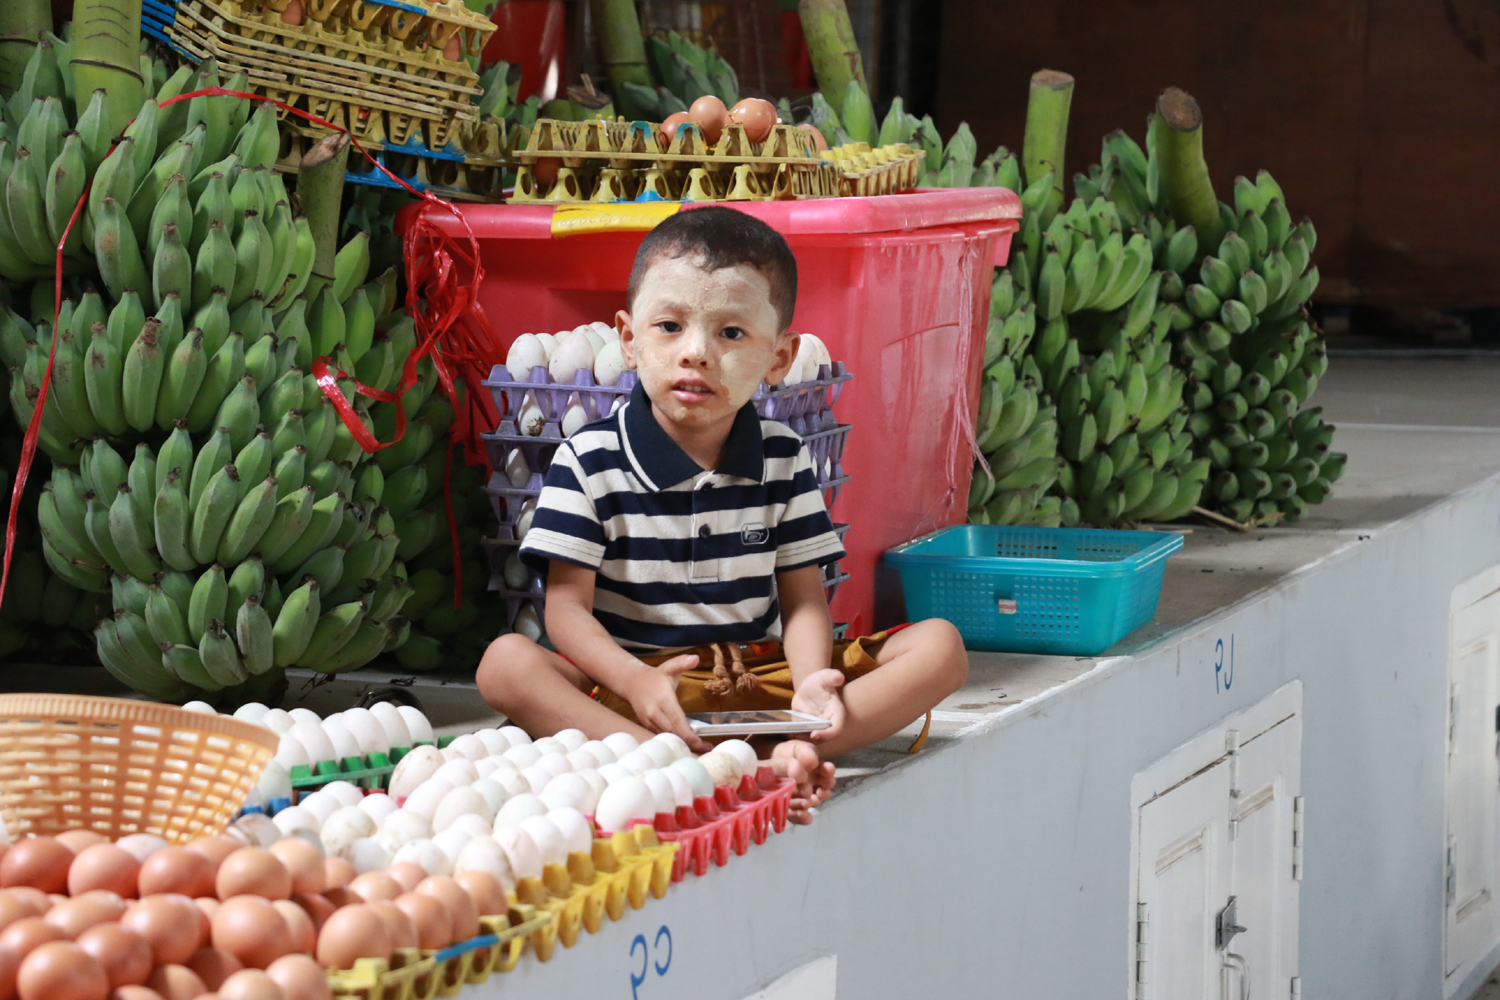 A boy sits on the commodity platform in the new market on May 27, 2017. [Photo: China Plus/Tu Yun]